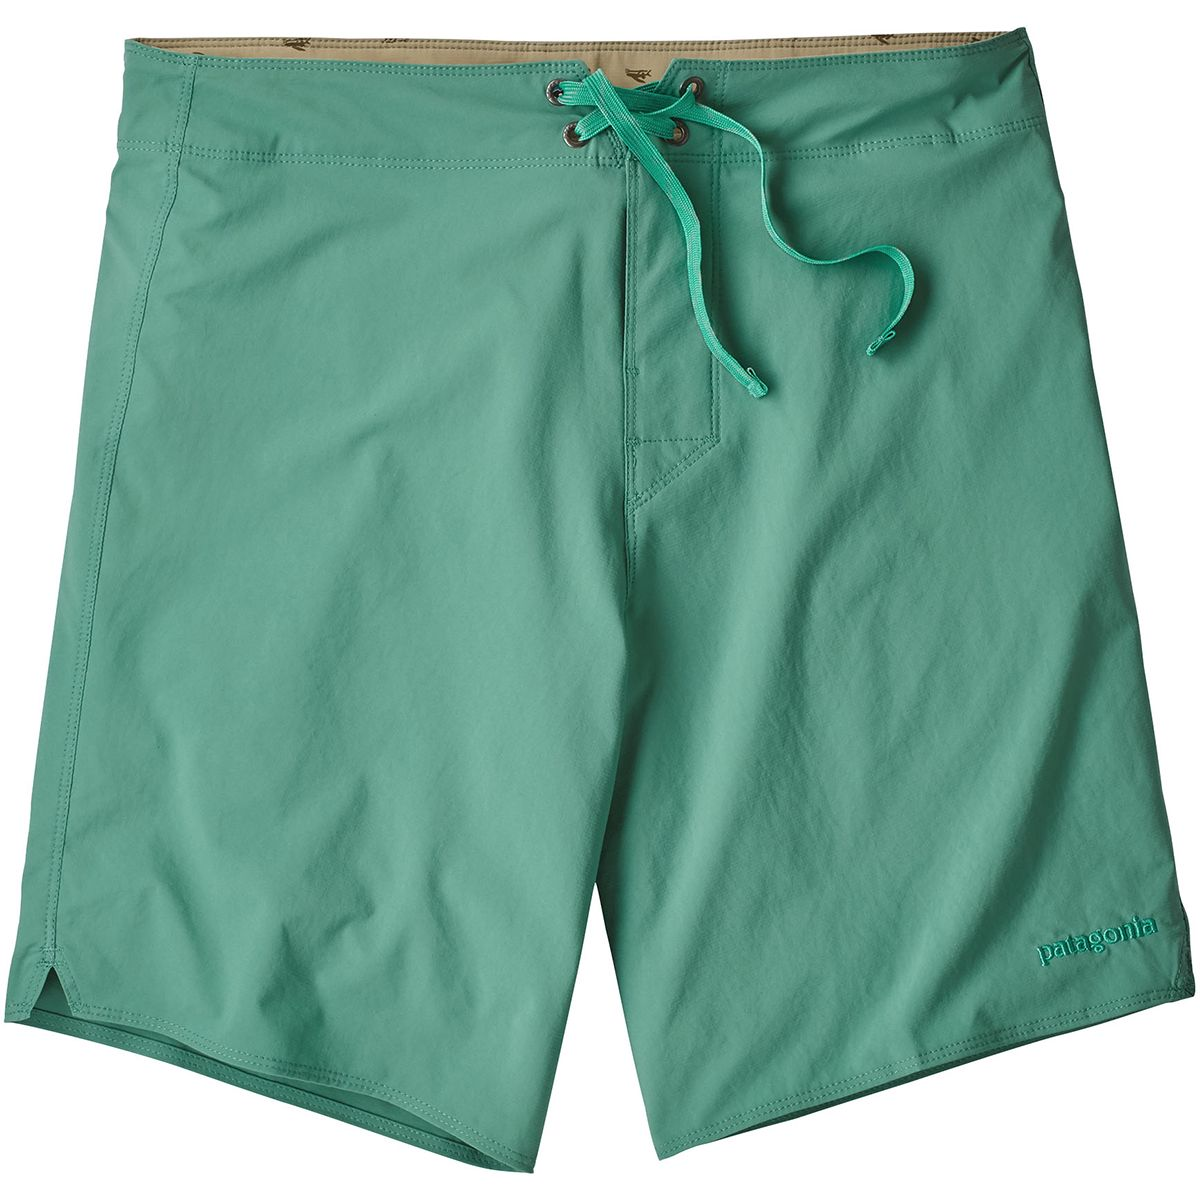 Patagonia Herren Light and Variable - 18 in. Board Shorts Türkis XL